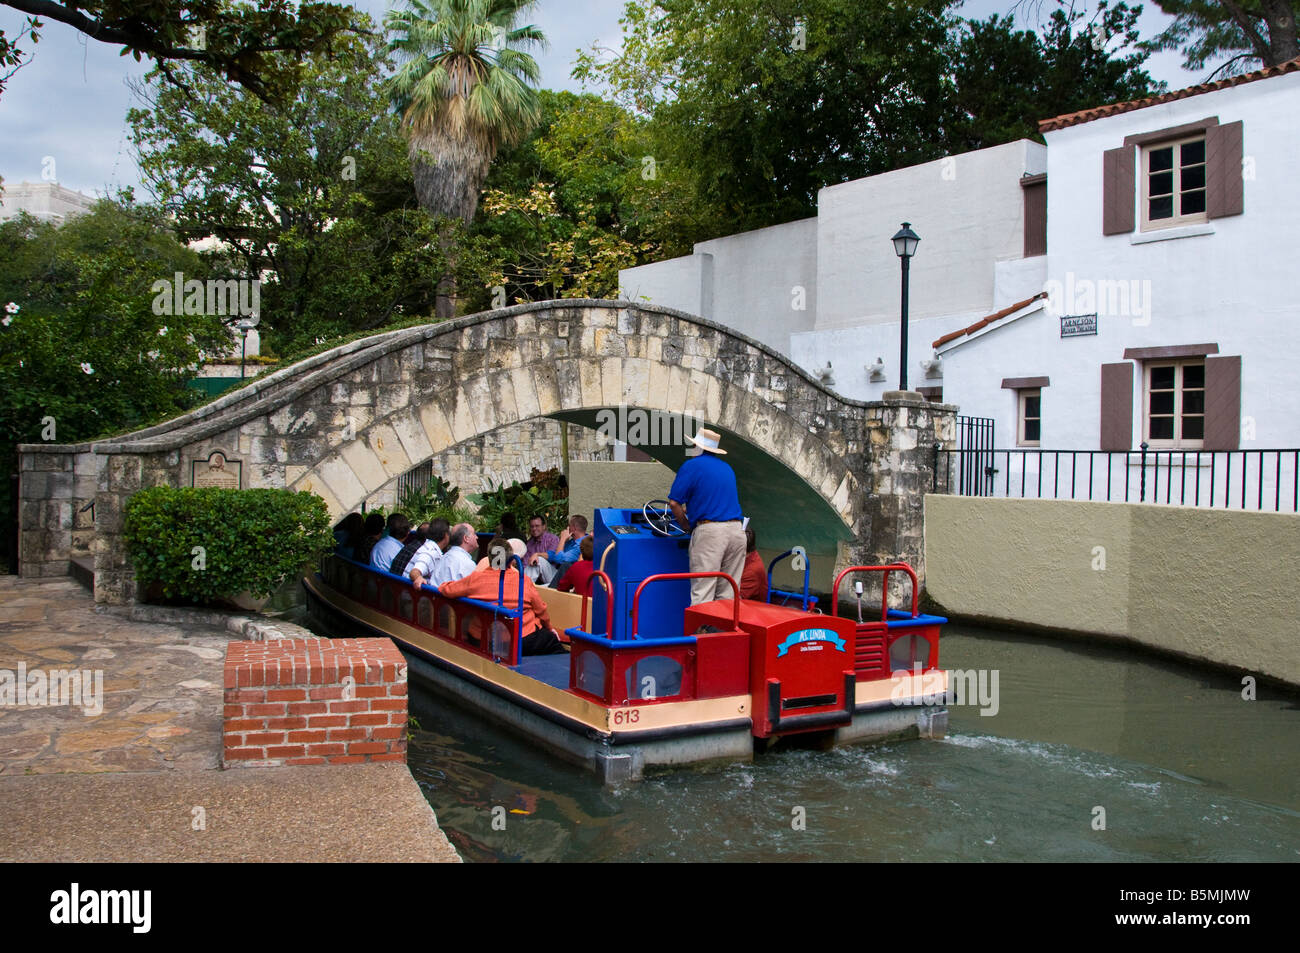 Boat plies the water River Walk, San Antonio River, downtown San Antonio, Texas. - Stock Image